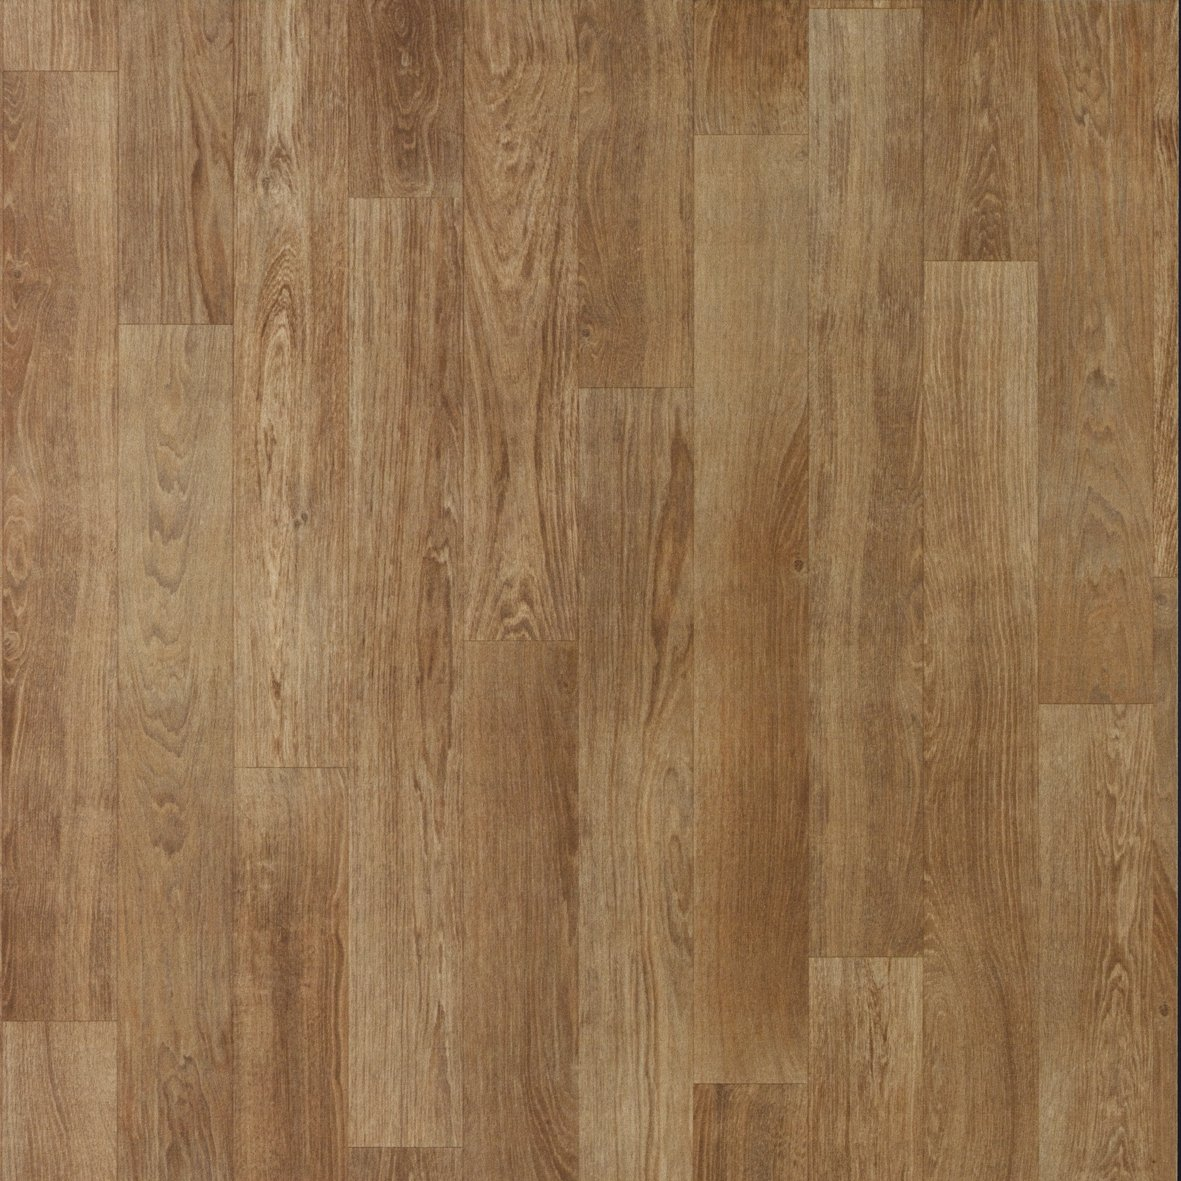 Flotex Wood Hd 22 Off Free Delivery